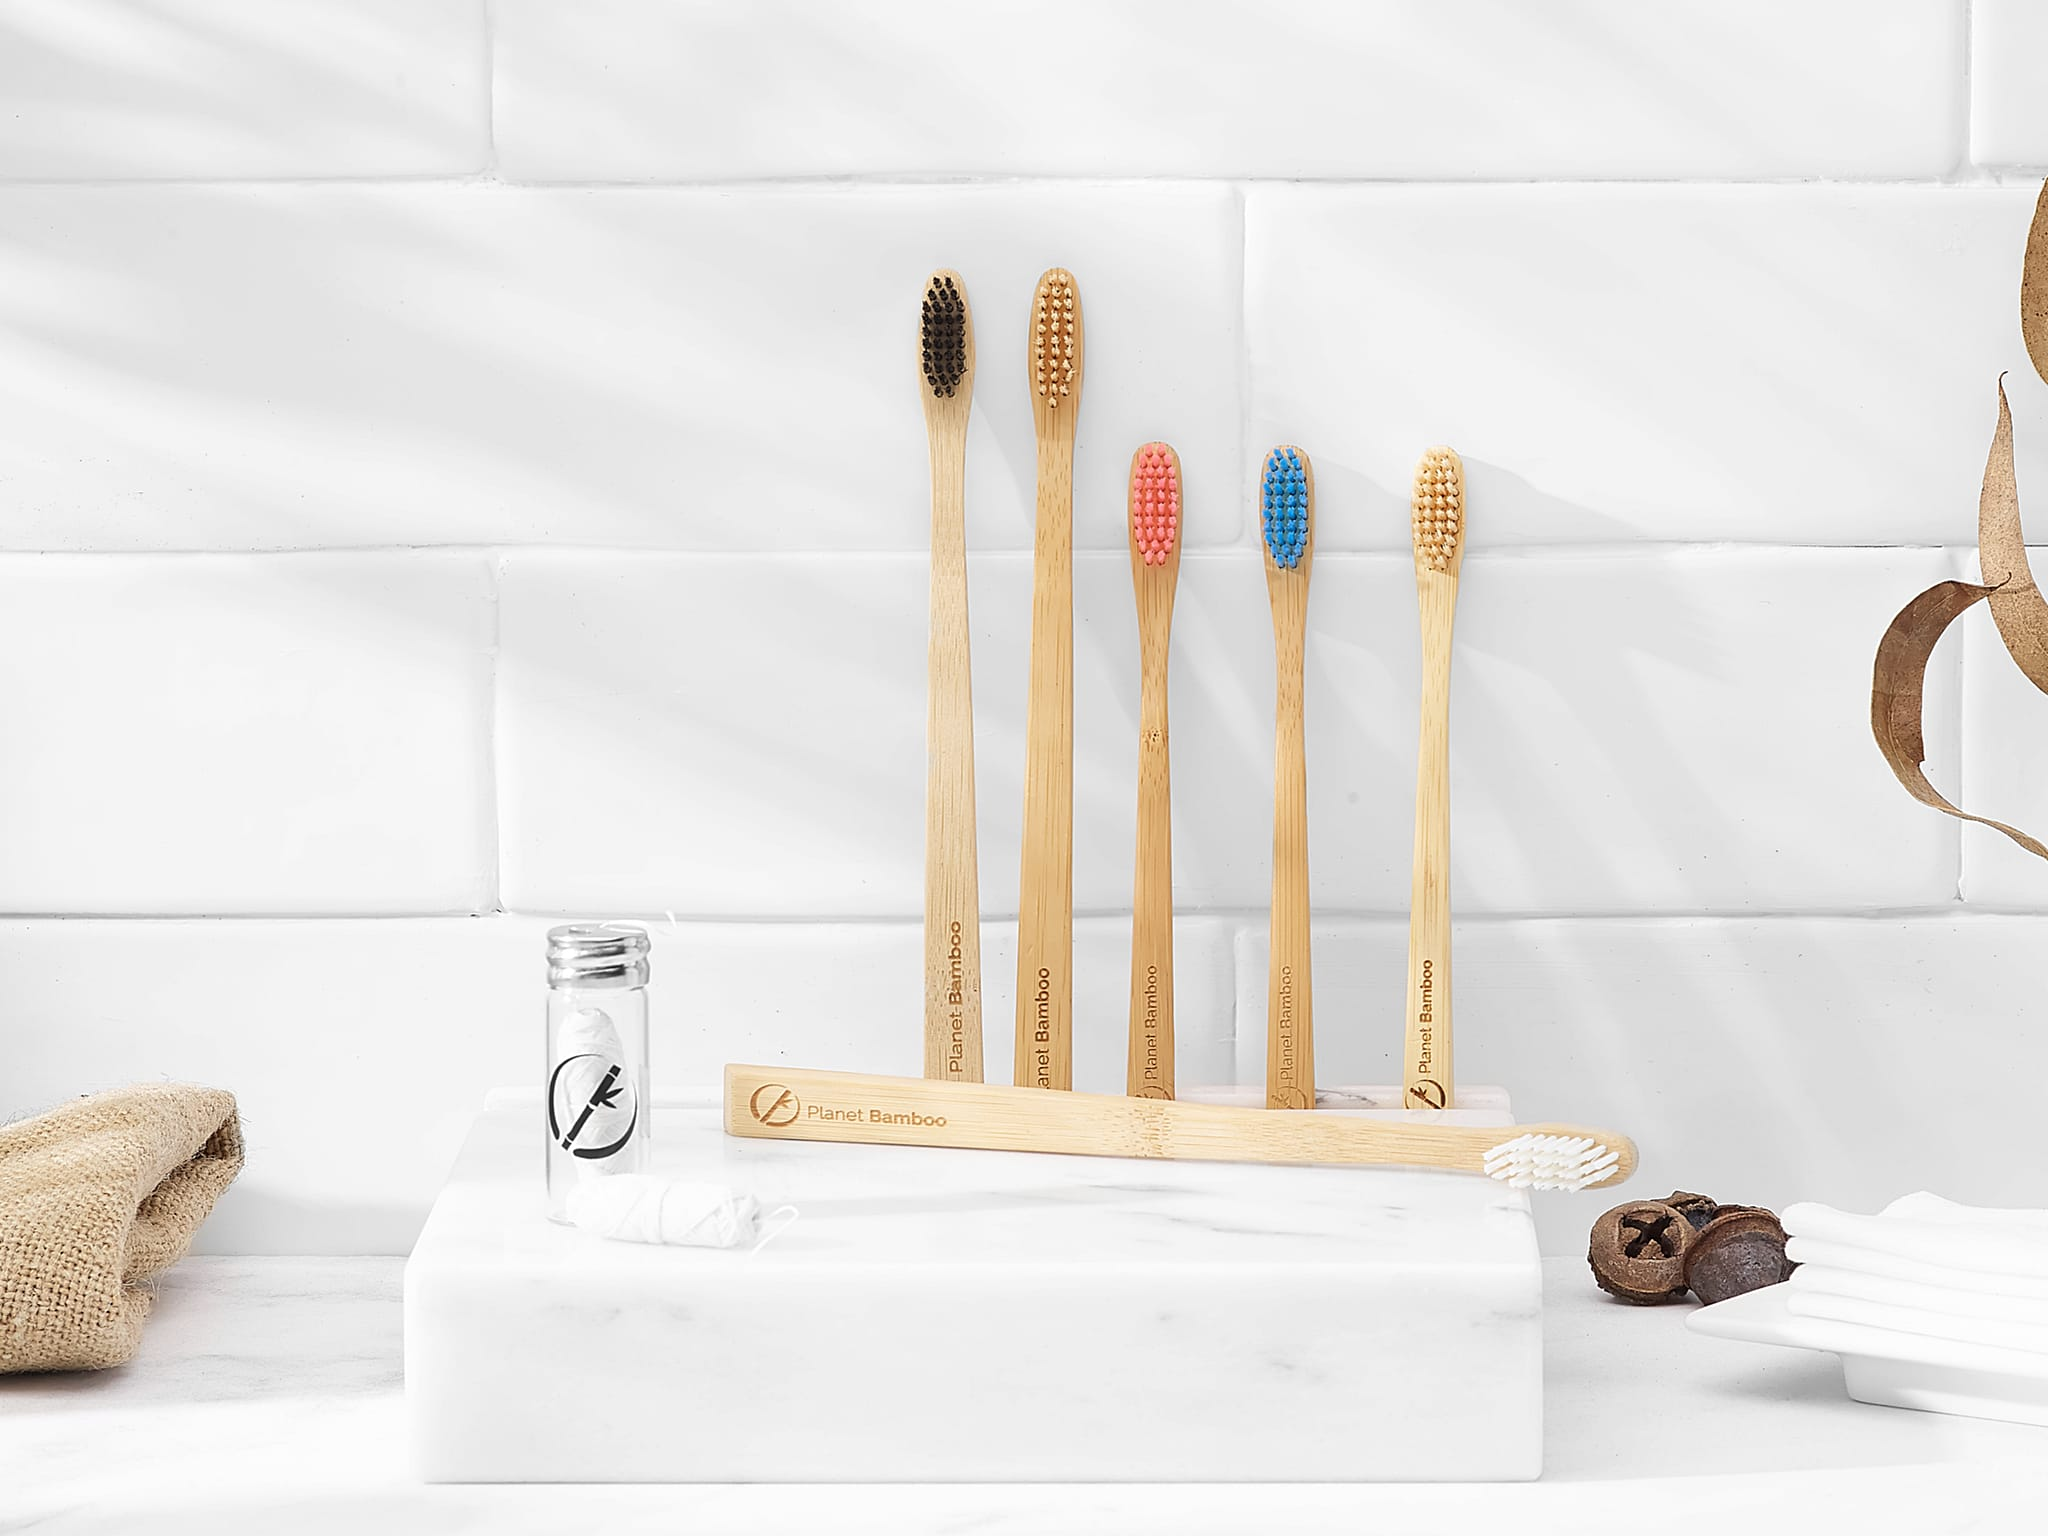 Product photography for Planet Bamboo of bambu toothbrushes